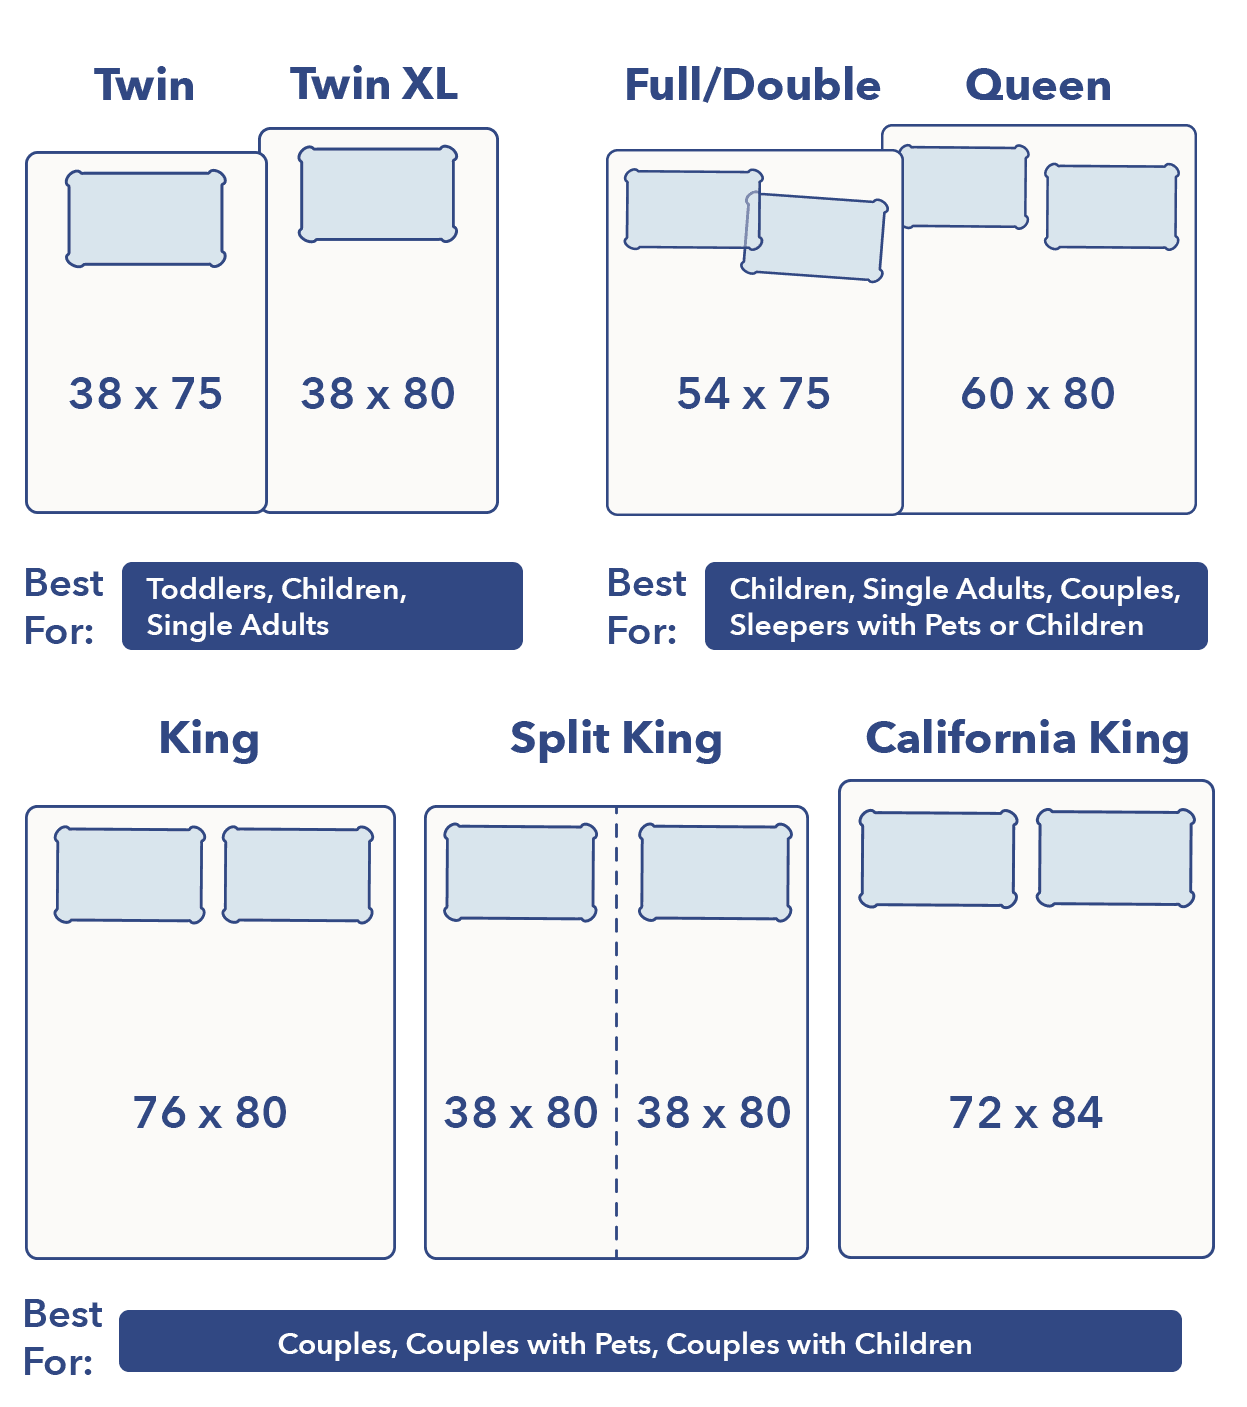 Bed Sizes 2021 Exact Dimensions For King Queen And Other Sizes